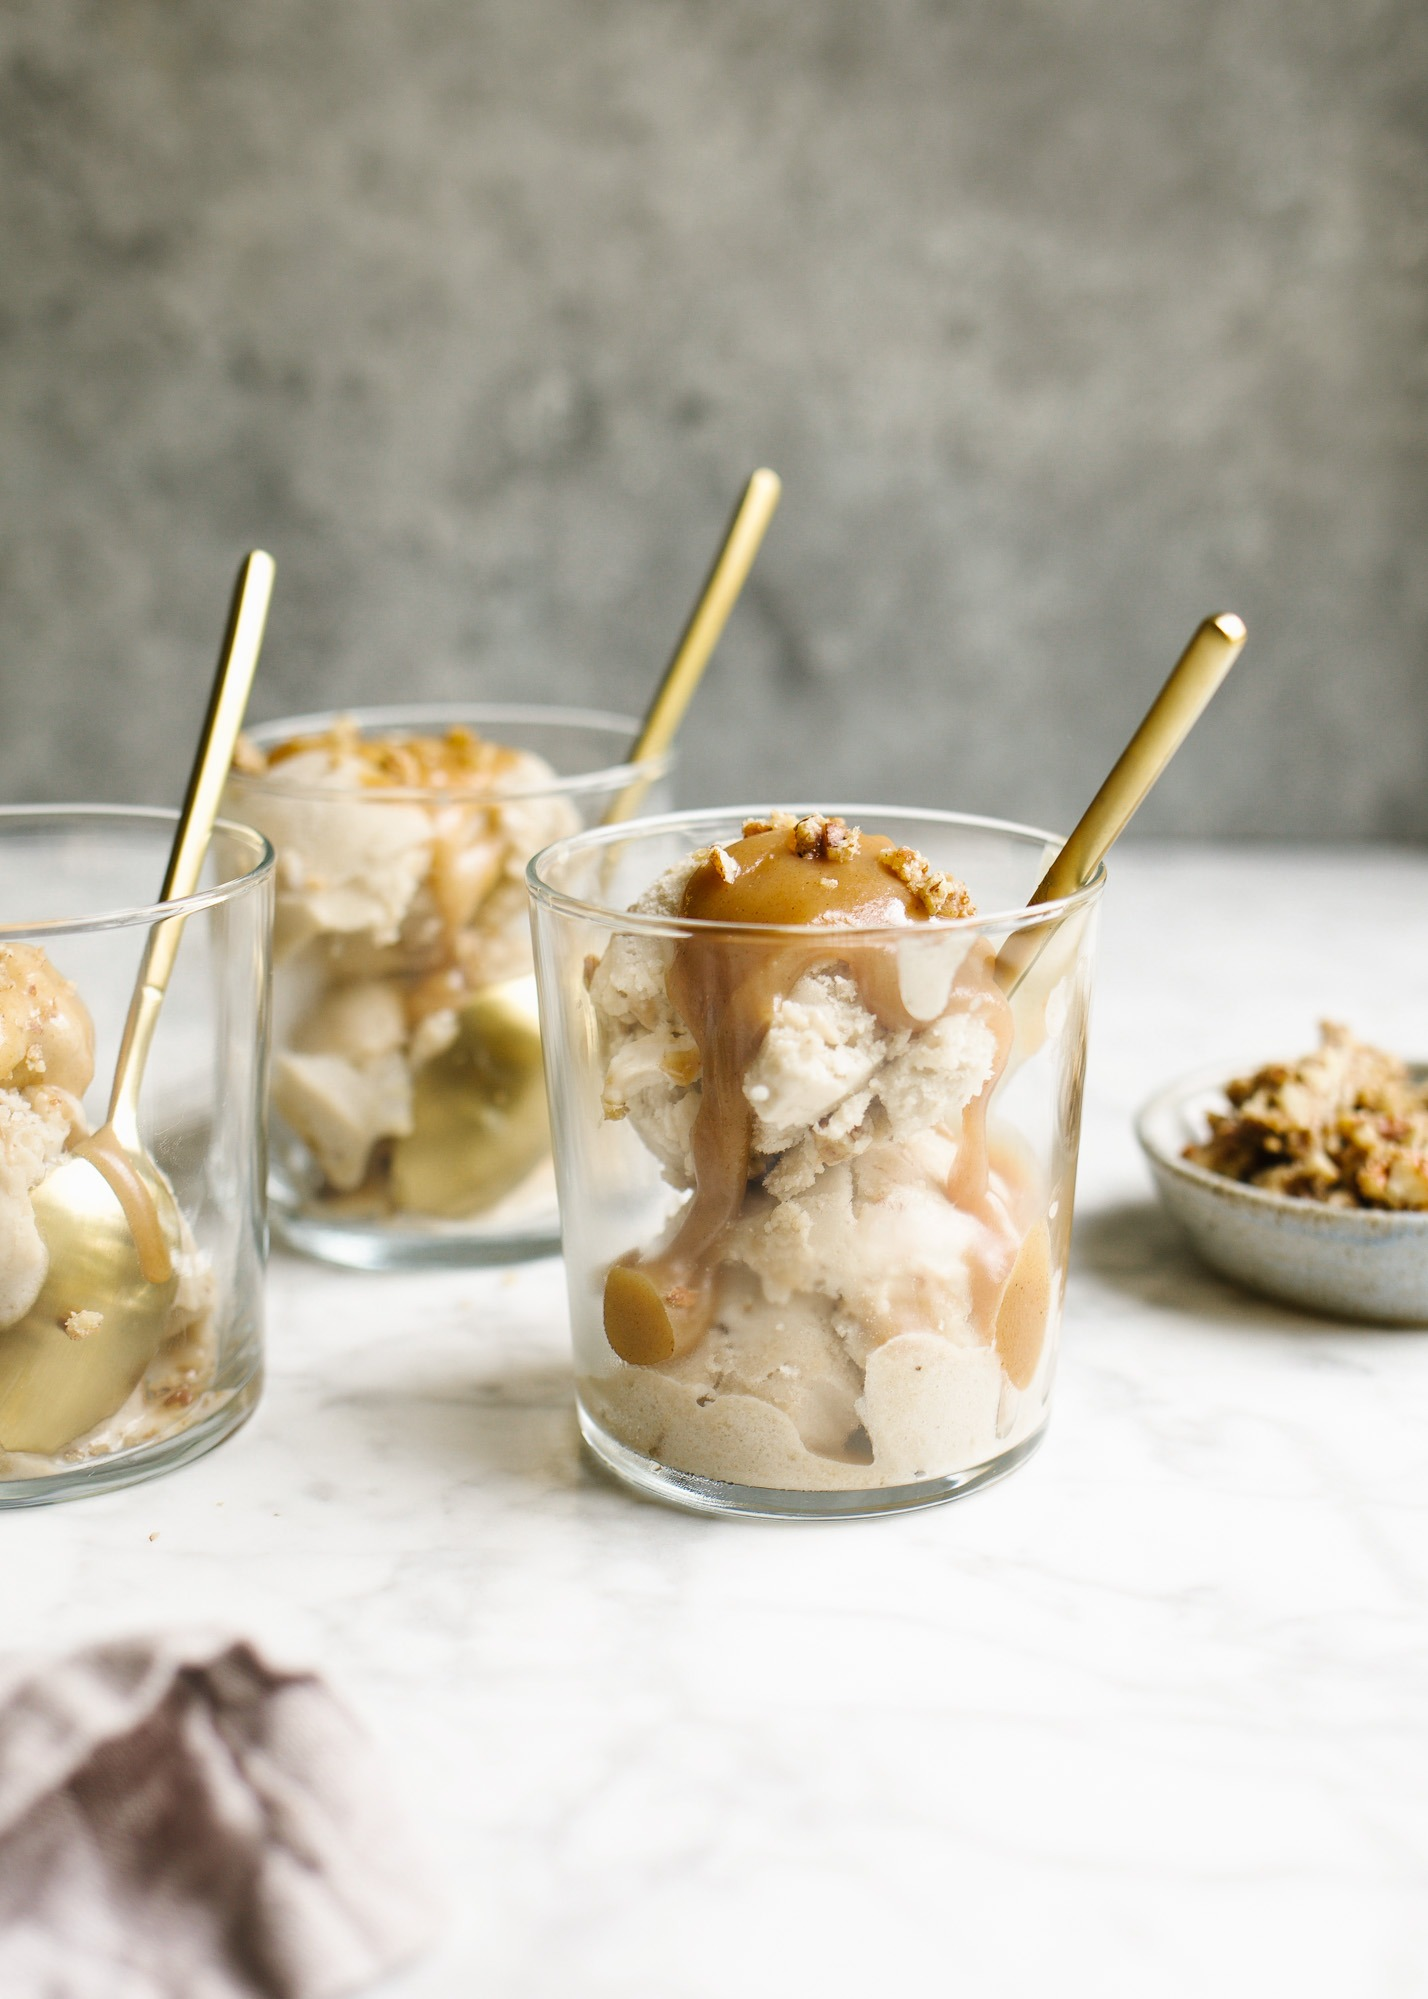 No-Churn Bananas Foster Ice Cream by Wood and Spoon blog. This is a one ingredient ice cream made with frozen bananas, all gussied up with the addition of a rum foster sauce and praline pecans. The ice cream comes together in a blender and is swirled with the stovetop bananas foster sauce and candied nuts. Learn how simple this nice cream is (with options for dairy free ice cream!) on thewoodandspoon.com.